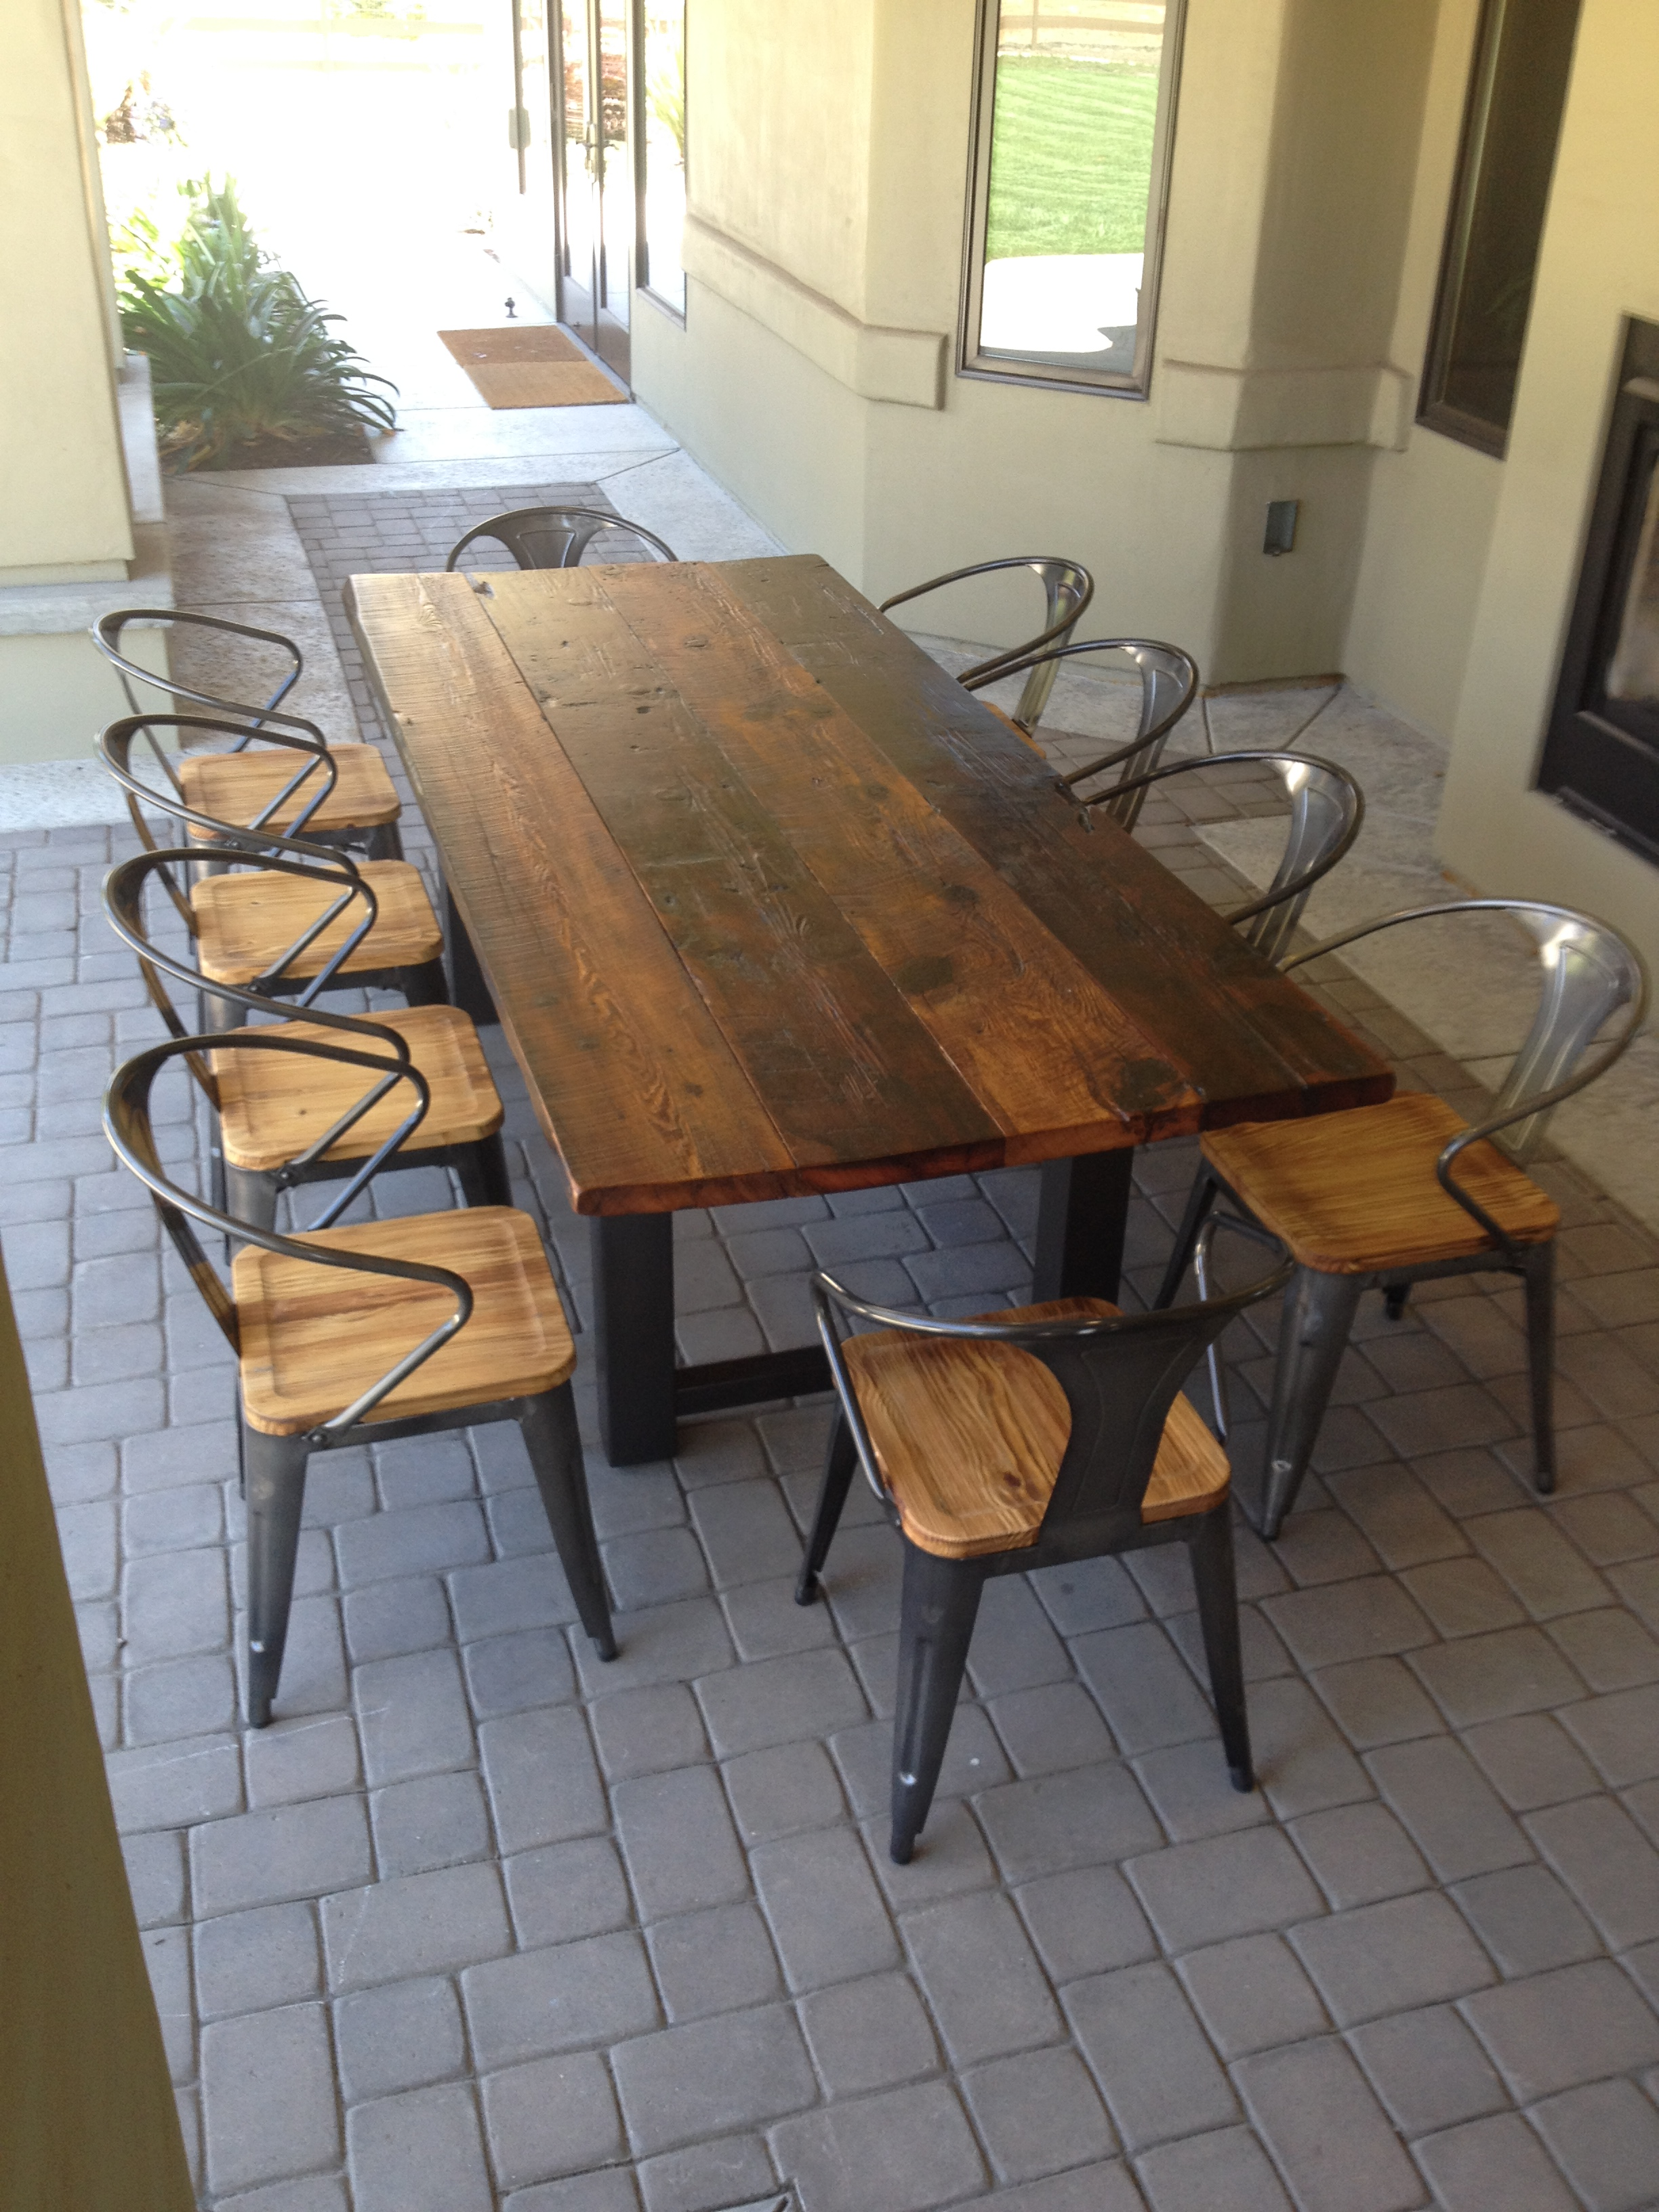 Reclaimed Wood And Steel Outdoor Dining Table